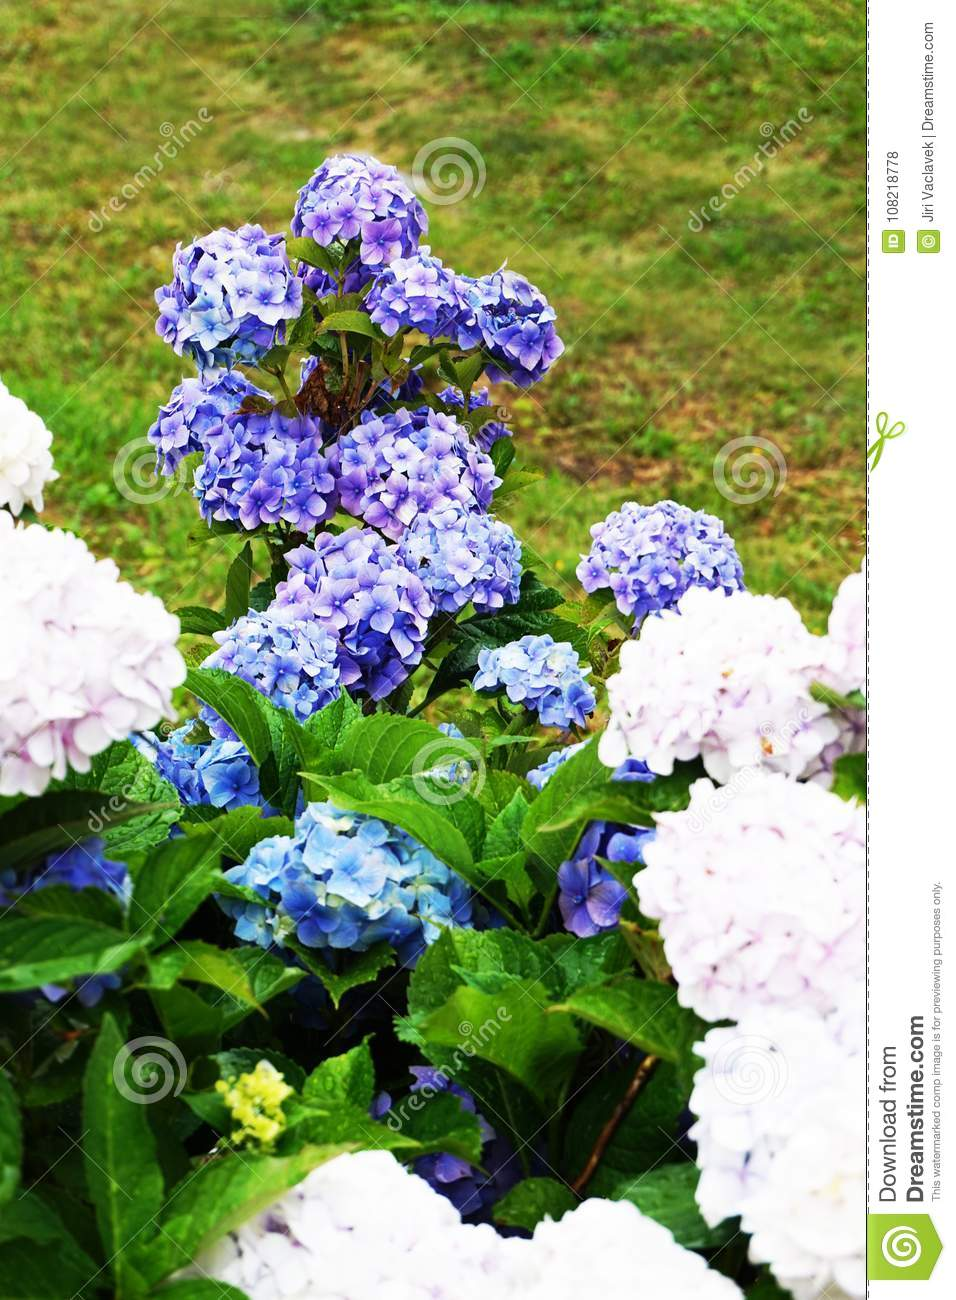 Hortensia Flowers Background Stock Photo Image Of Natural Floral - Color-hortensia